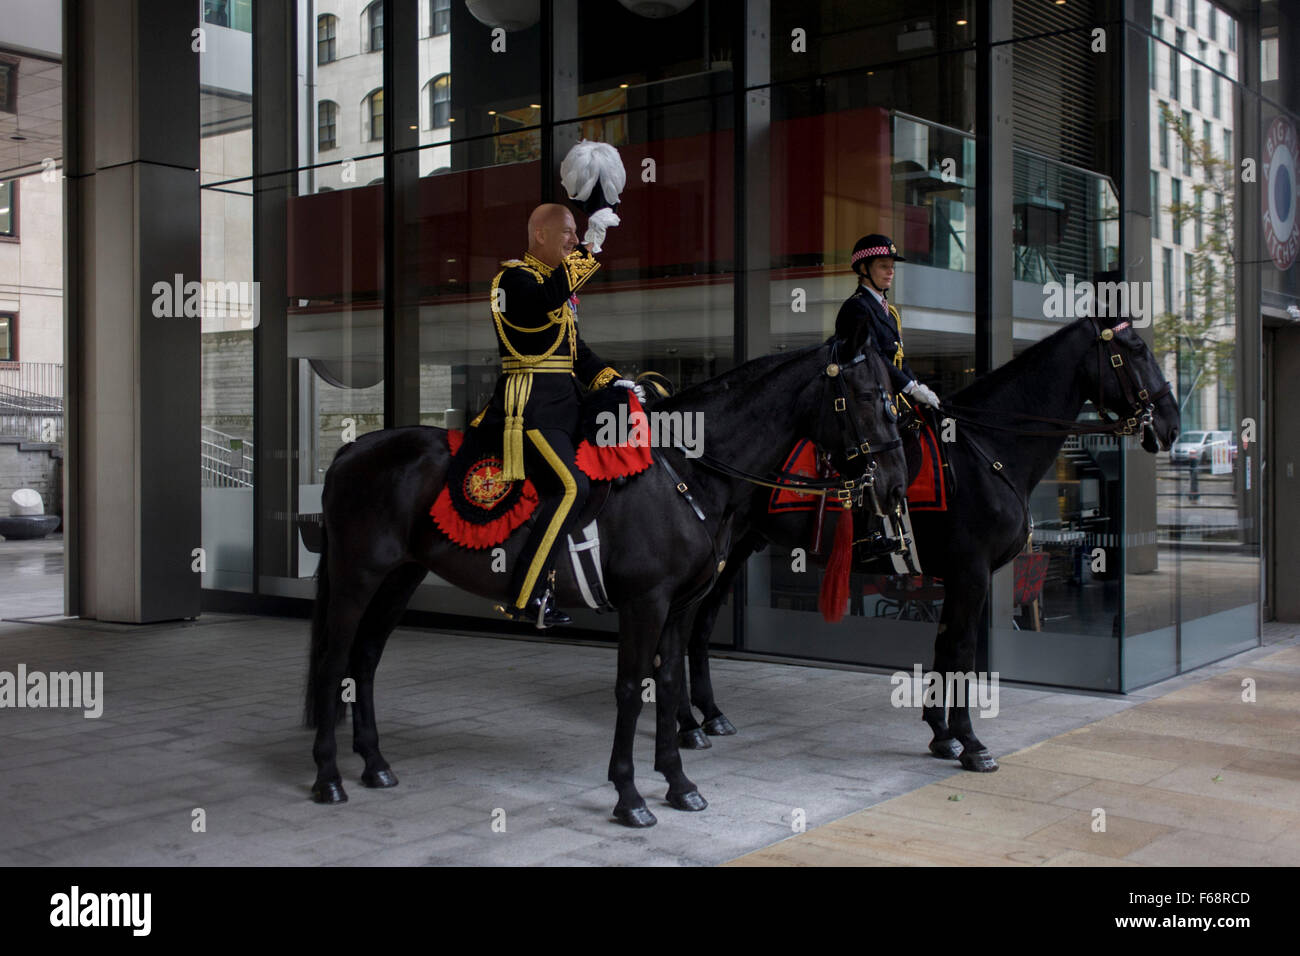 London, UK. 14th November, 2015. A senior police officer  before the Lord Mayor's Show in the City of London, - Stock Image